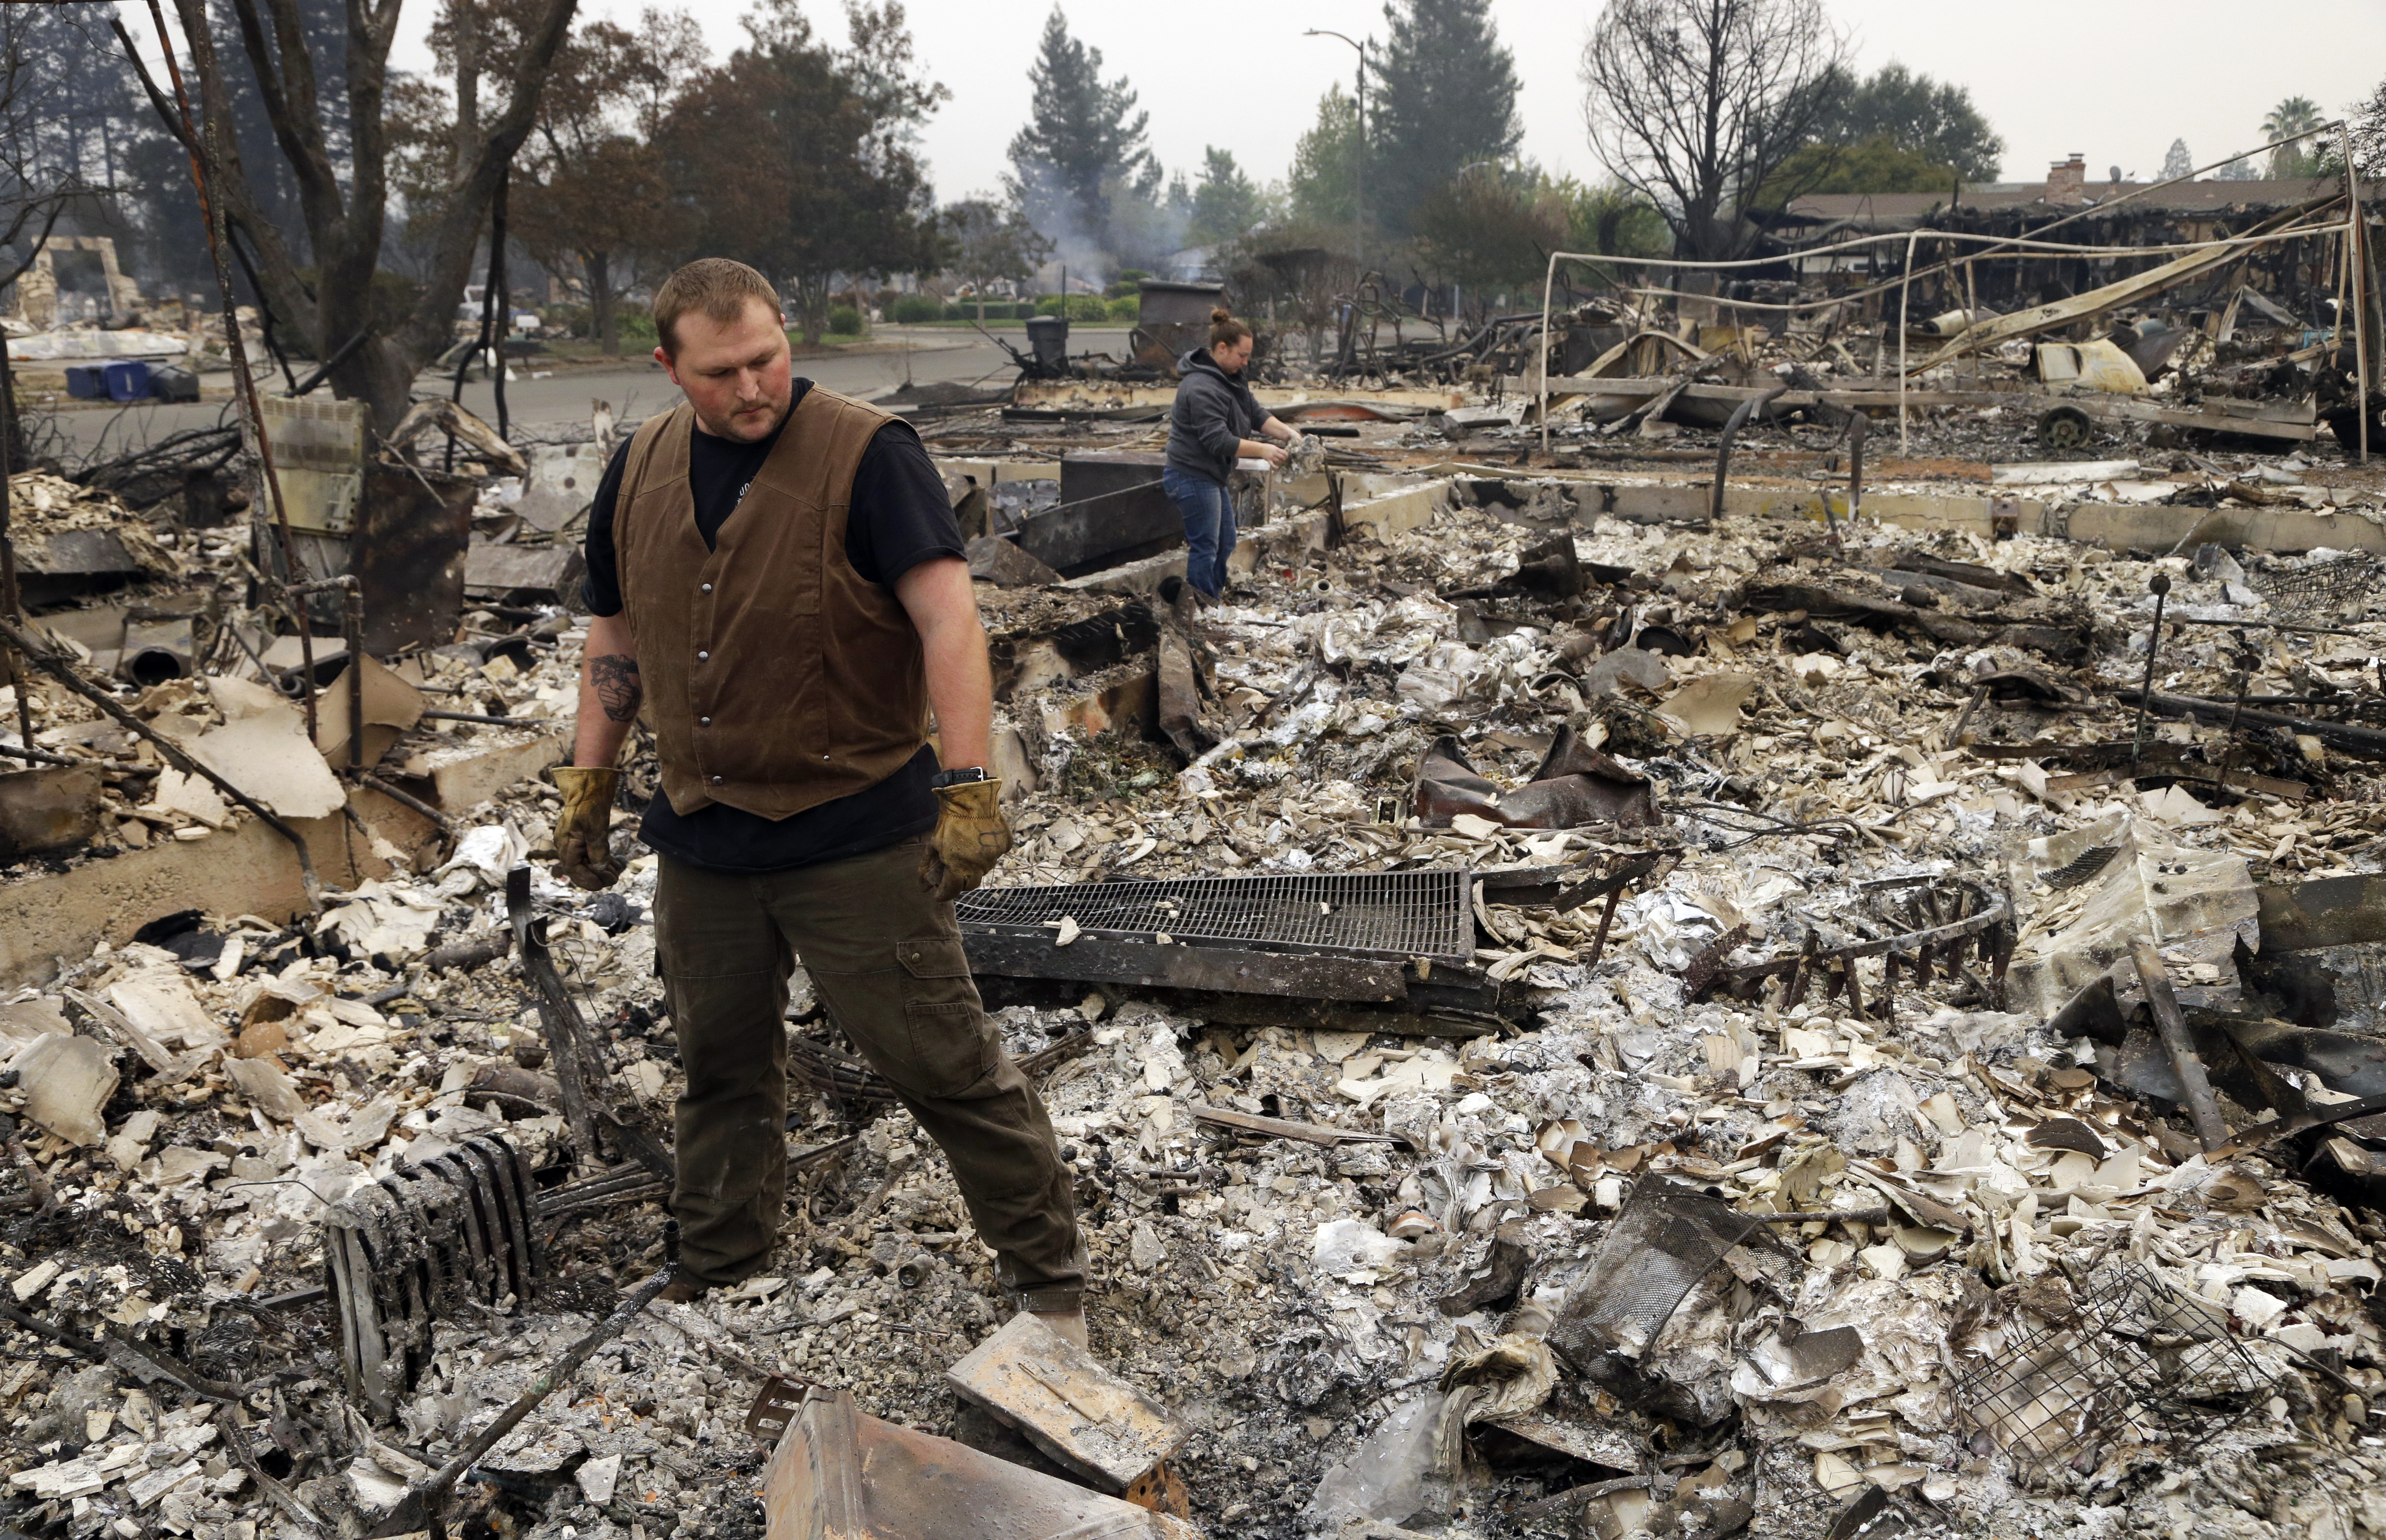 <div class='meta'><div class='origin-logo' data-origin='none'></div><span class='caption-text' data-credit='Ben Margot/AP Photo'>Luke Baier, left, and his wife Gina Baier look through the remains of their home in the Coffey Park area of Santa Rosa, Calif., on Tuesday, Oct. 10, 2017.</span></div>